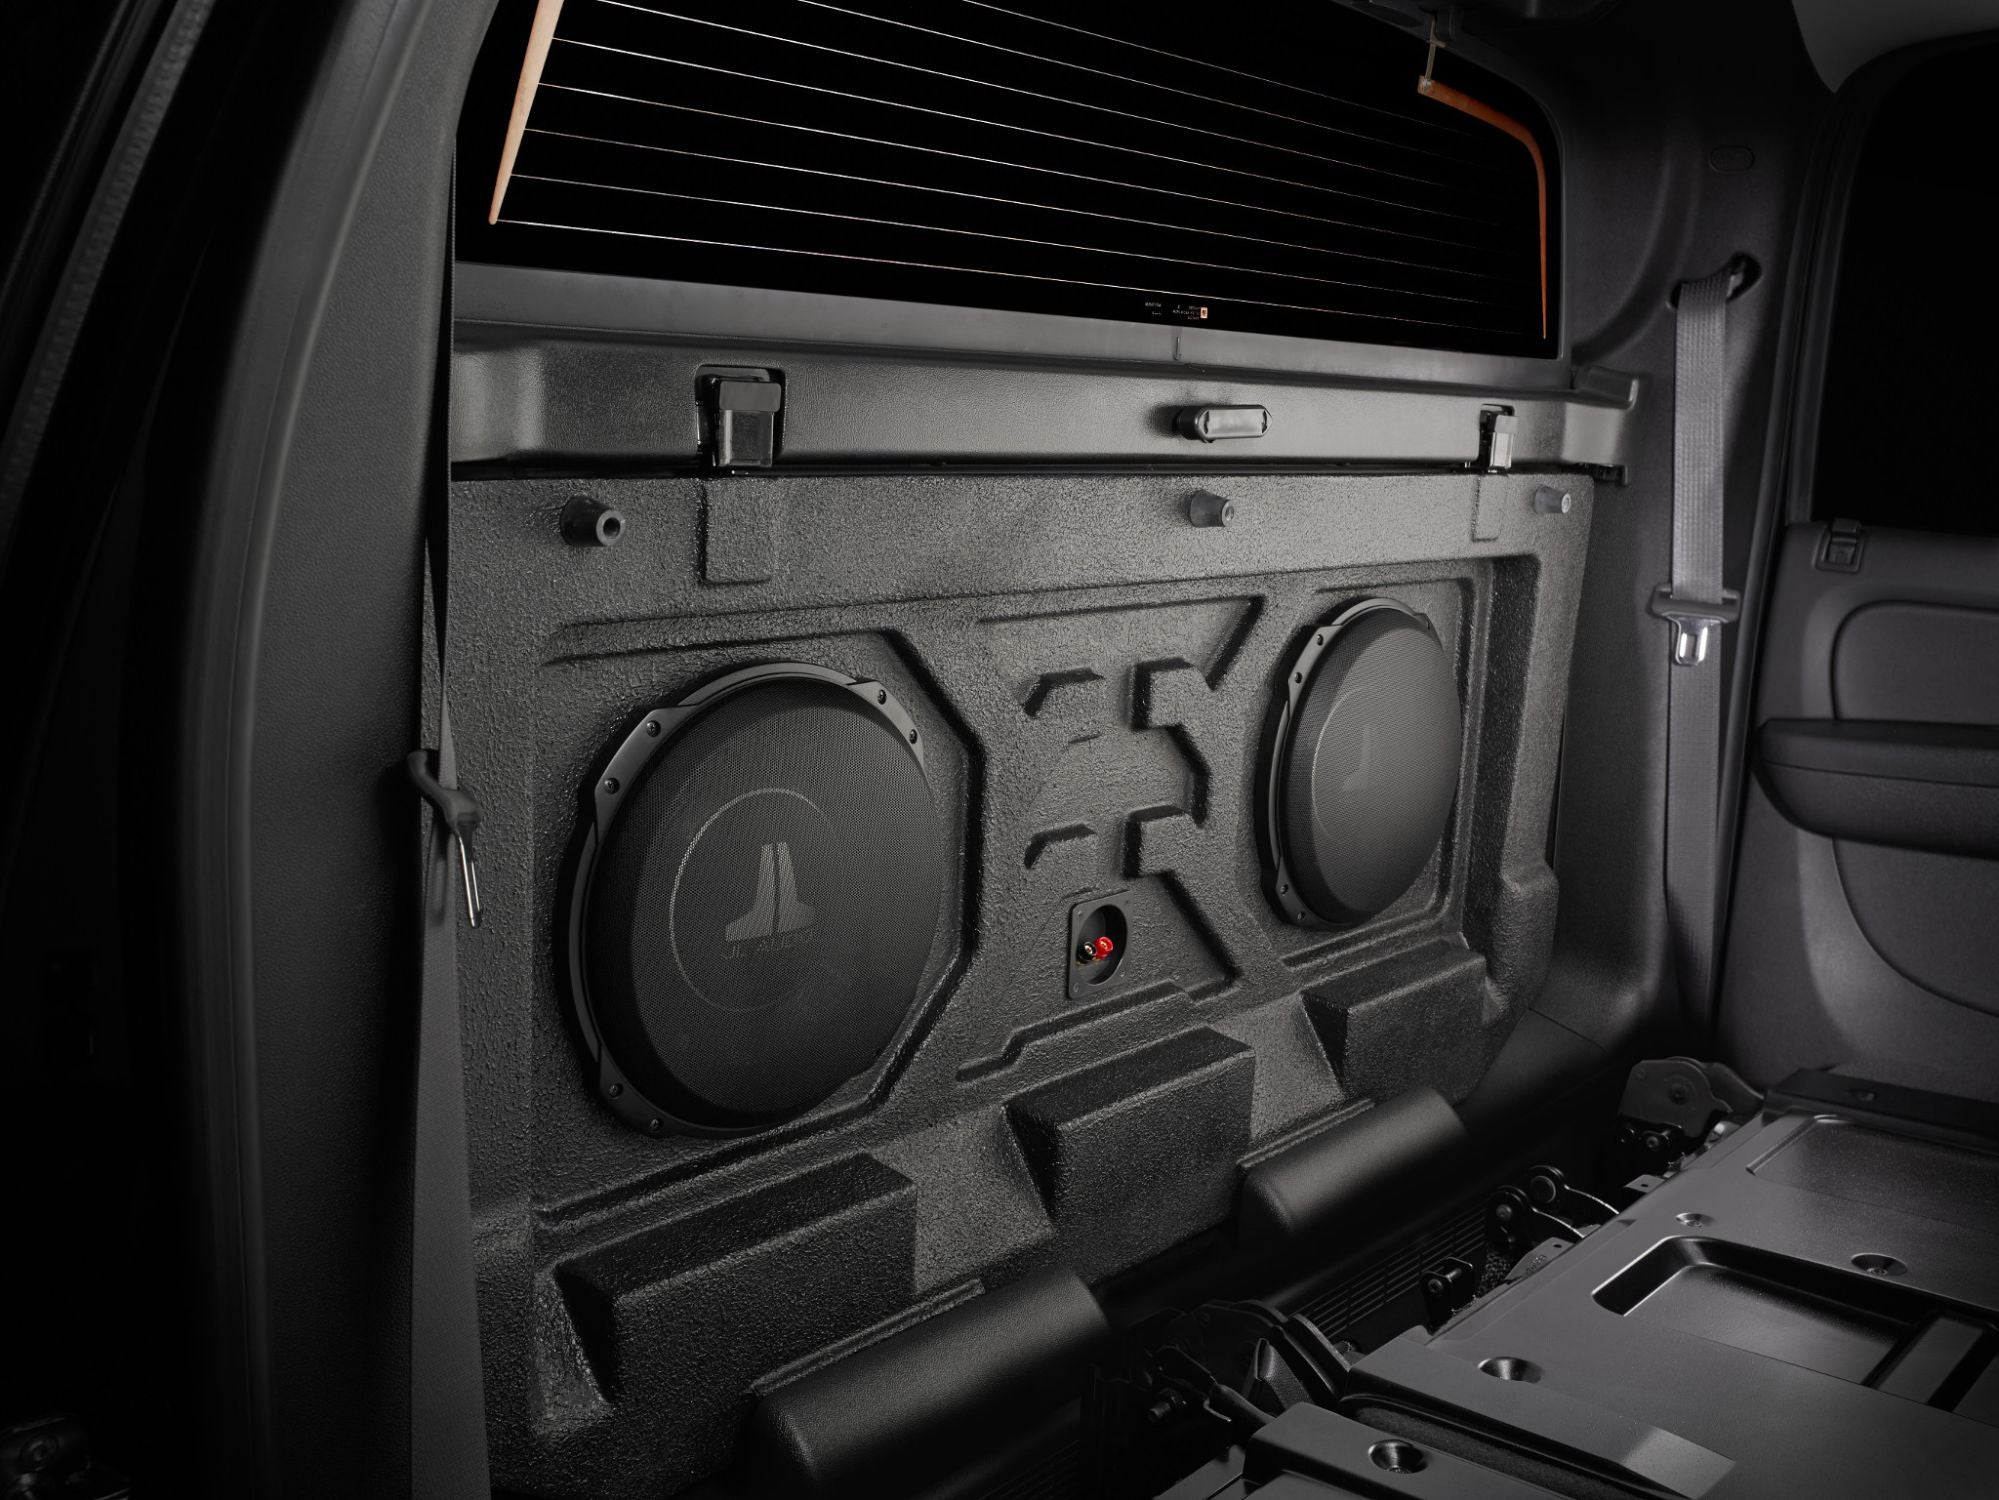 SB-GM-AVAL-12TW3 Stealthbox Installed in Vehicle